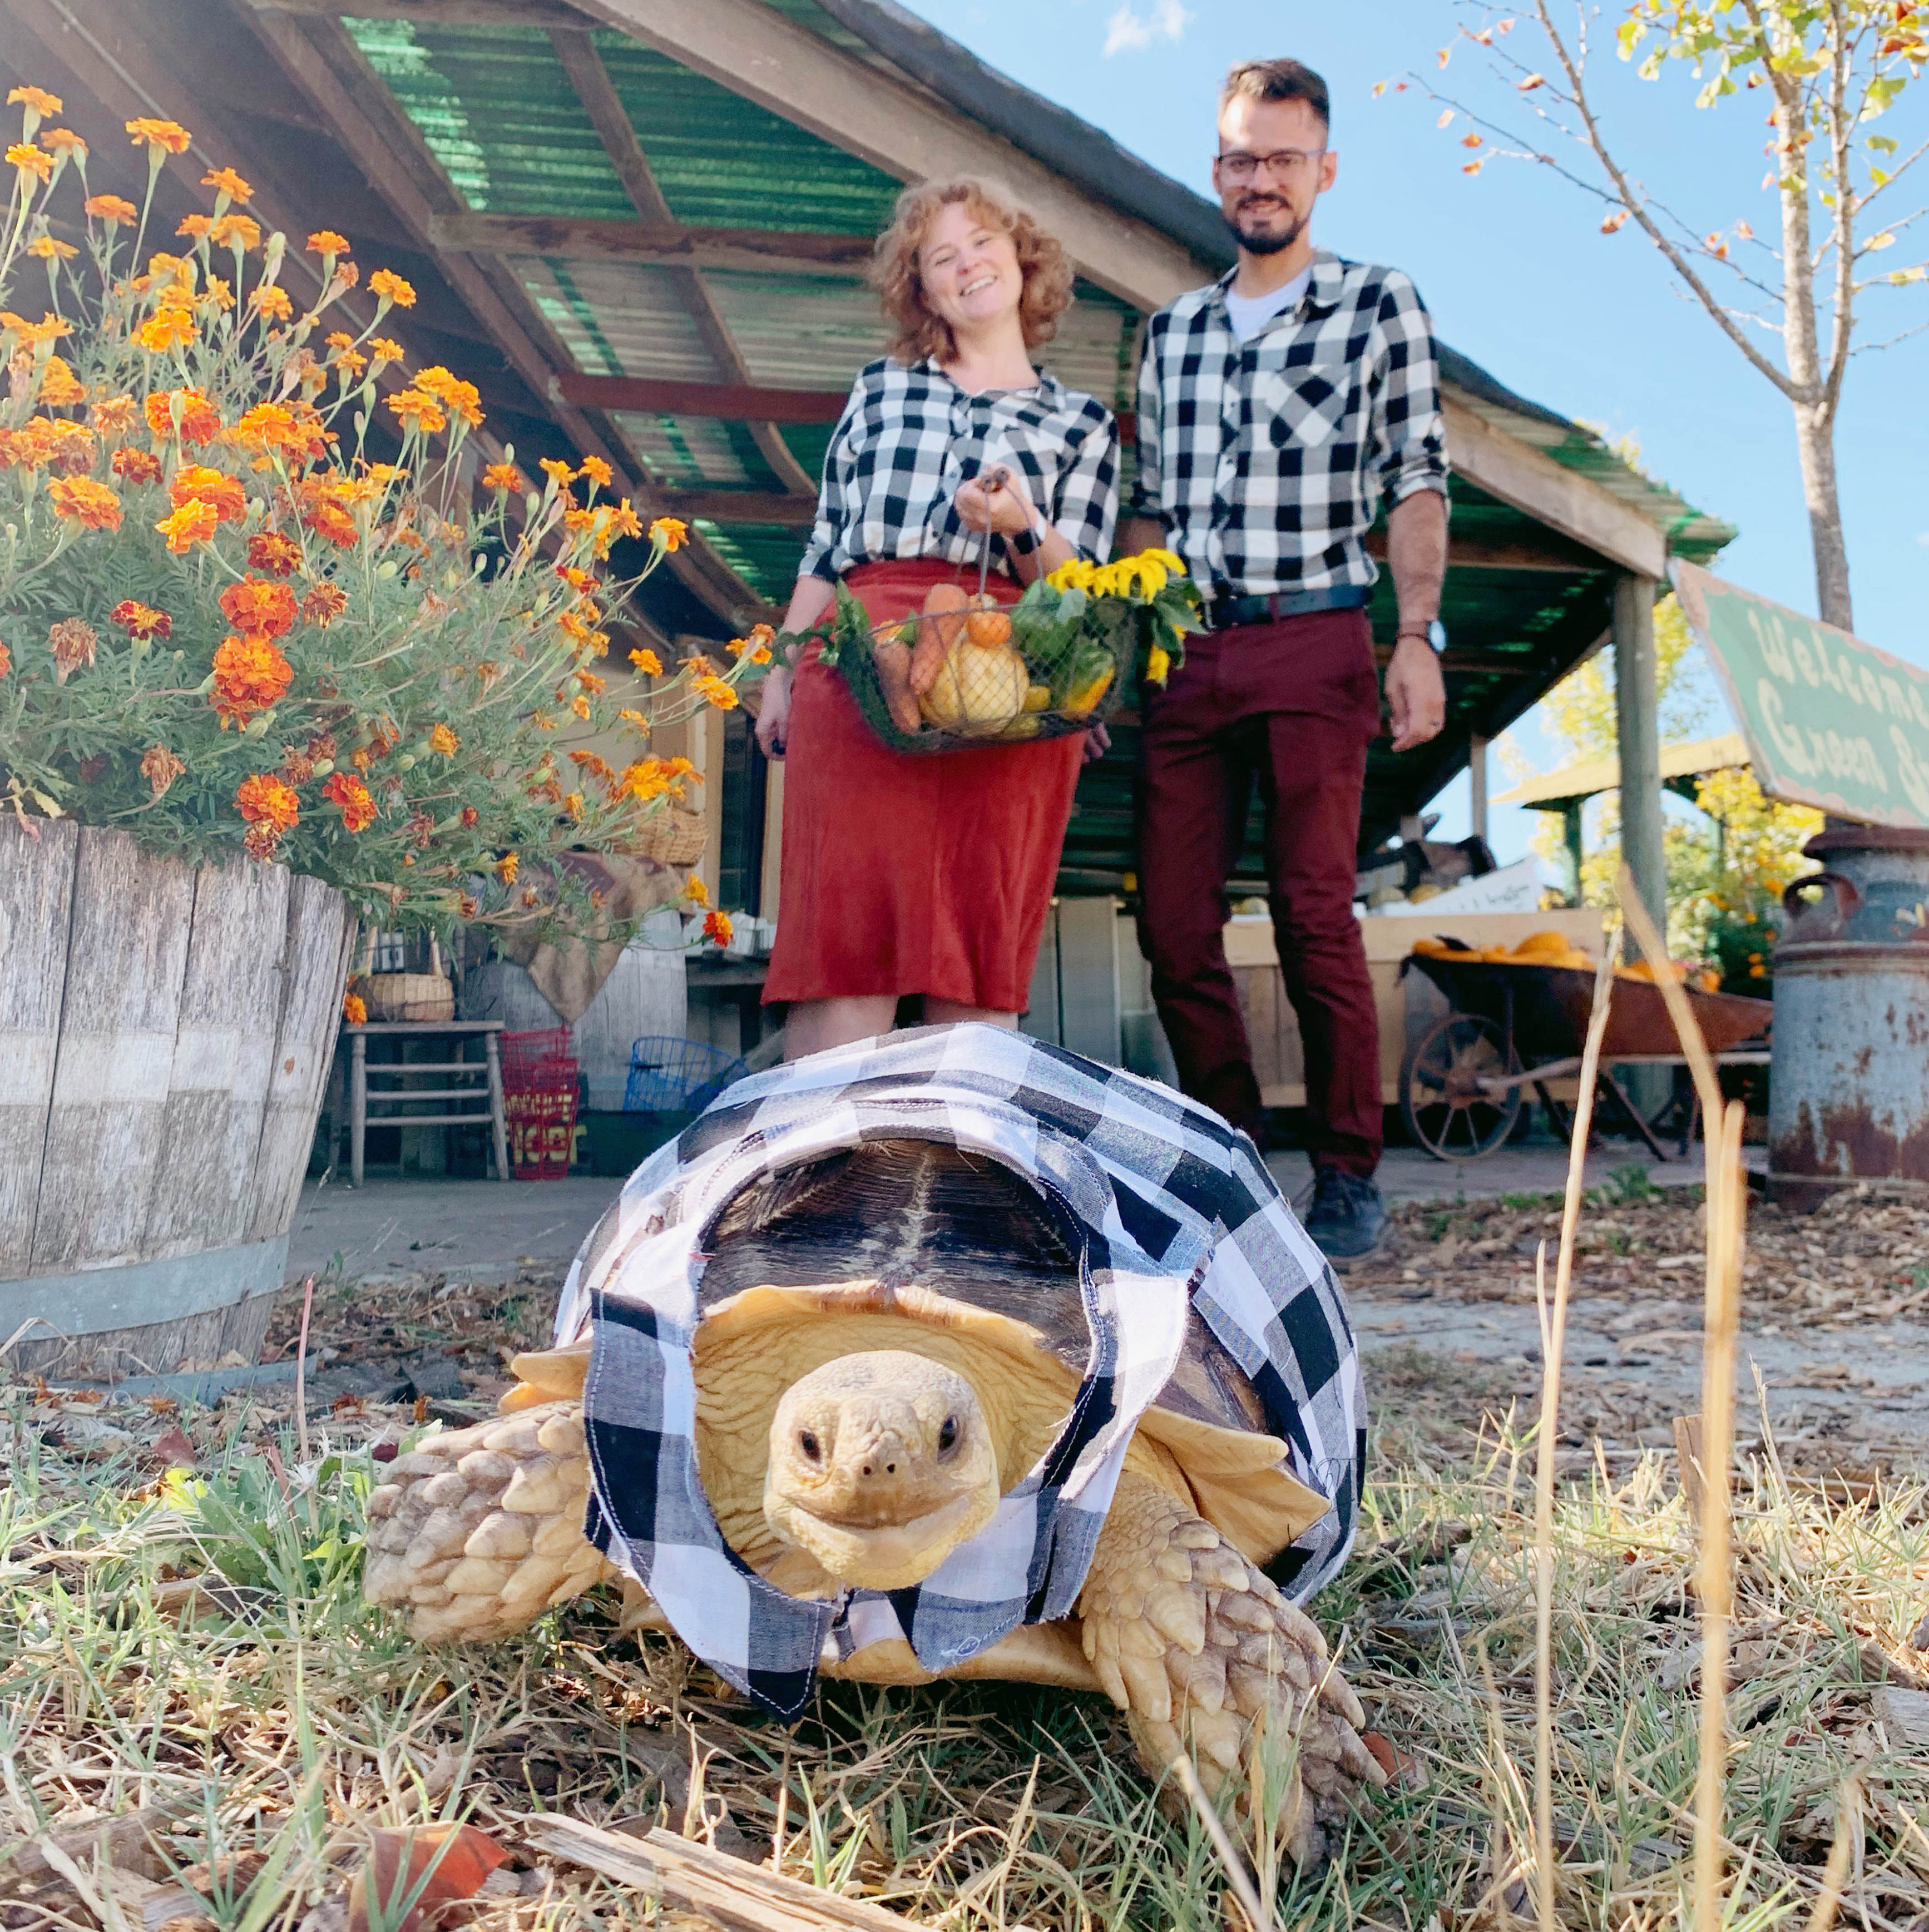 Couple dressed their tortoise in matching flannel shirt